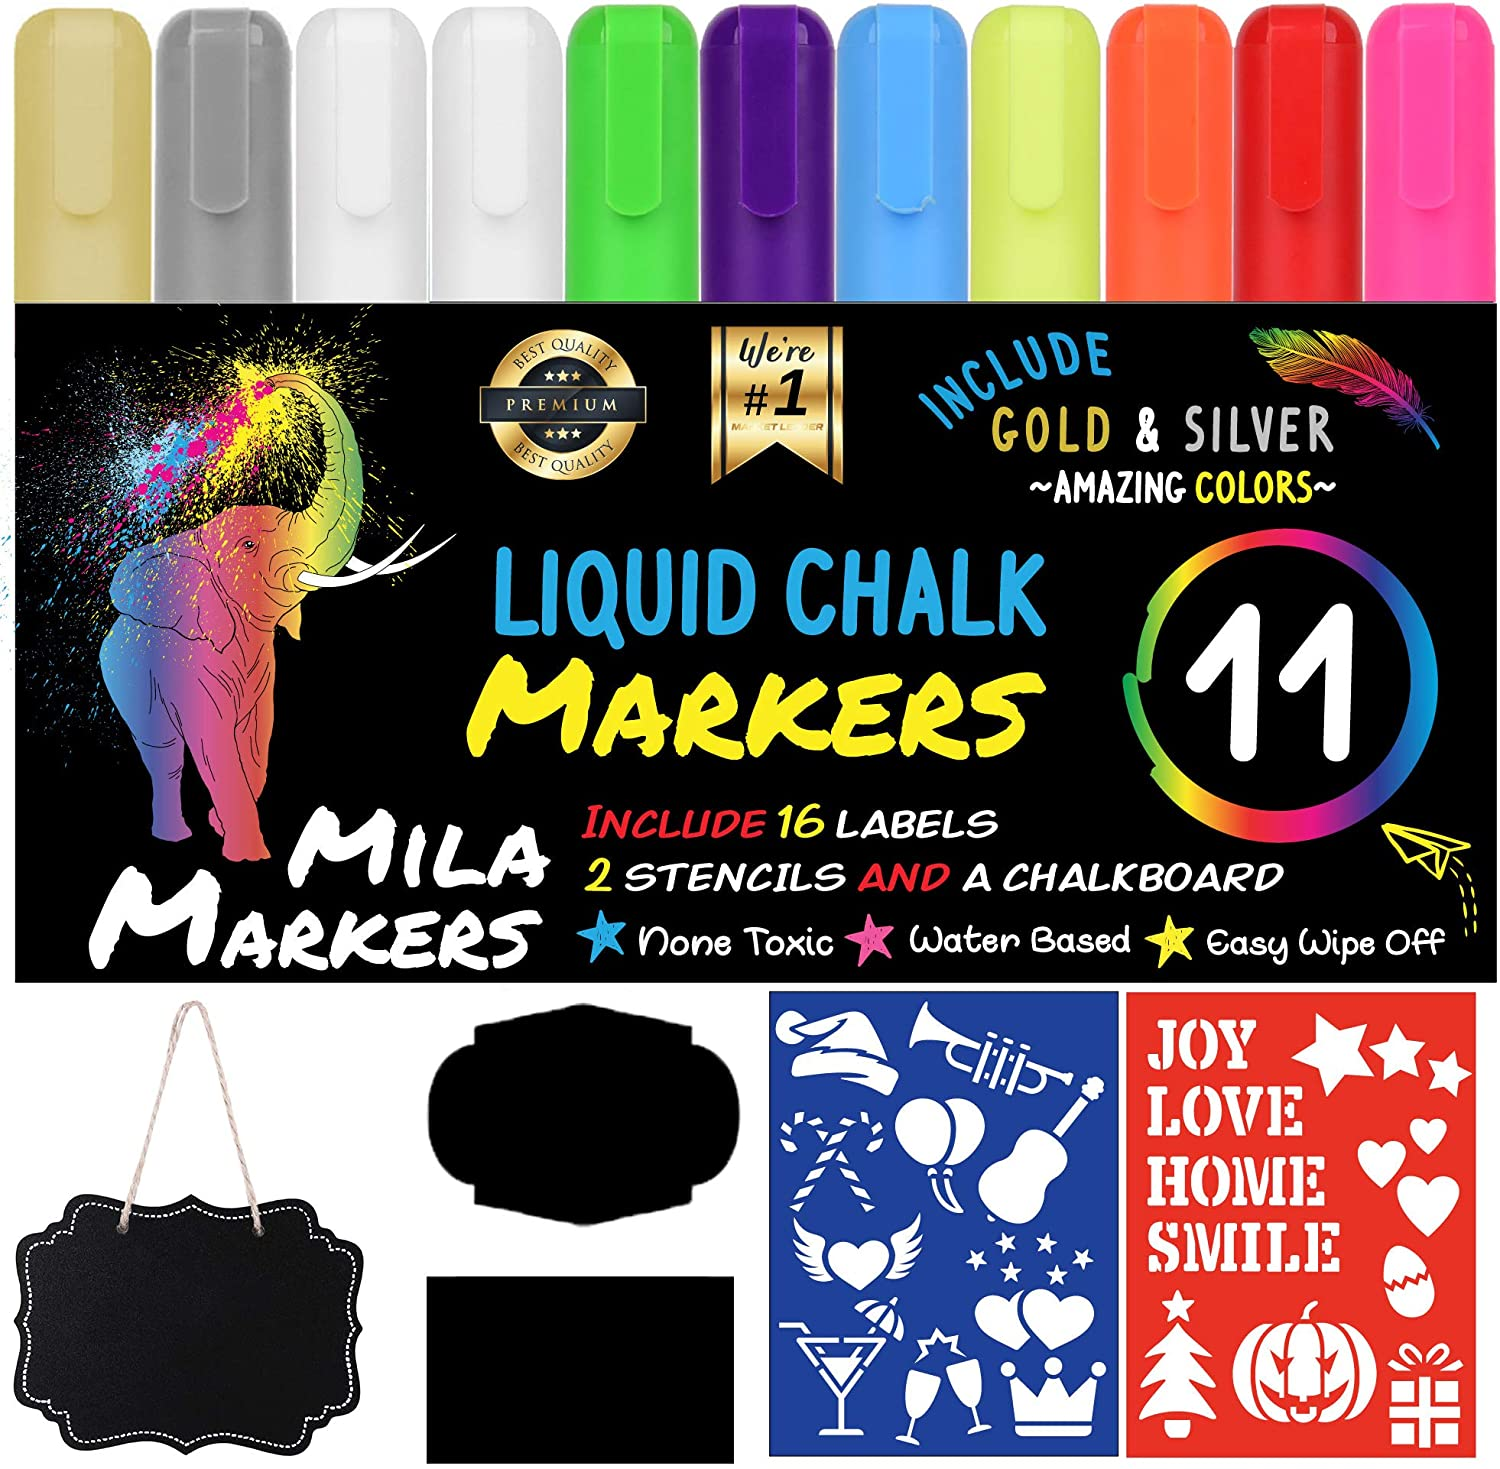 Chalk Markers by Mila Markers, Pack of 11 + A Chalkboard + Christmas Drawing Stencils + 16 Labels, Premium Liquid Chalkboard Neon Pens, Including Gold, Silver and Extra White Ink, 6mm Tips : Office Products